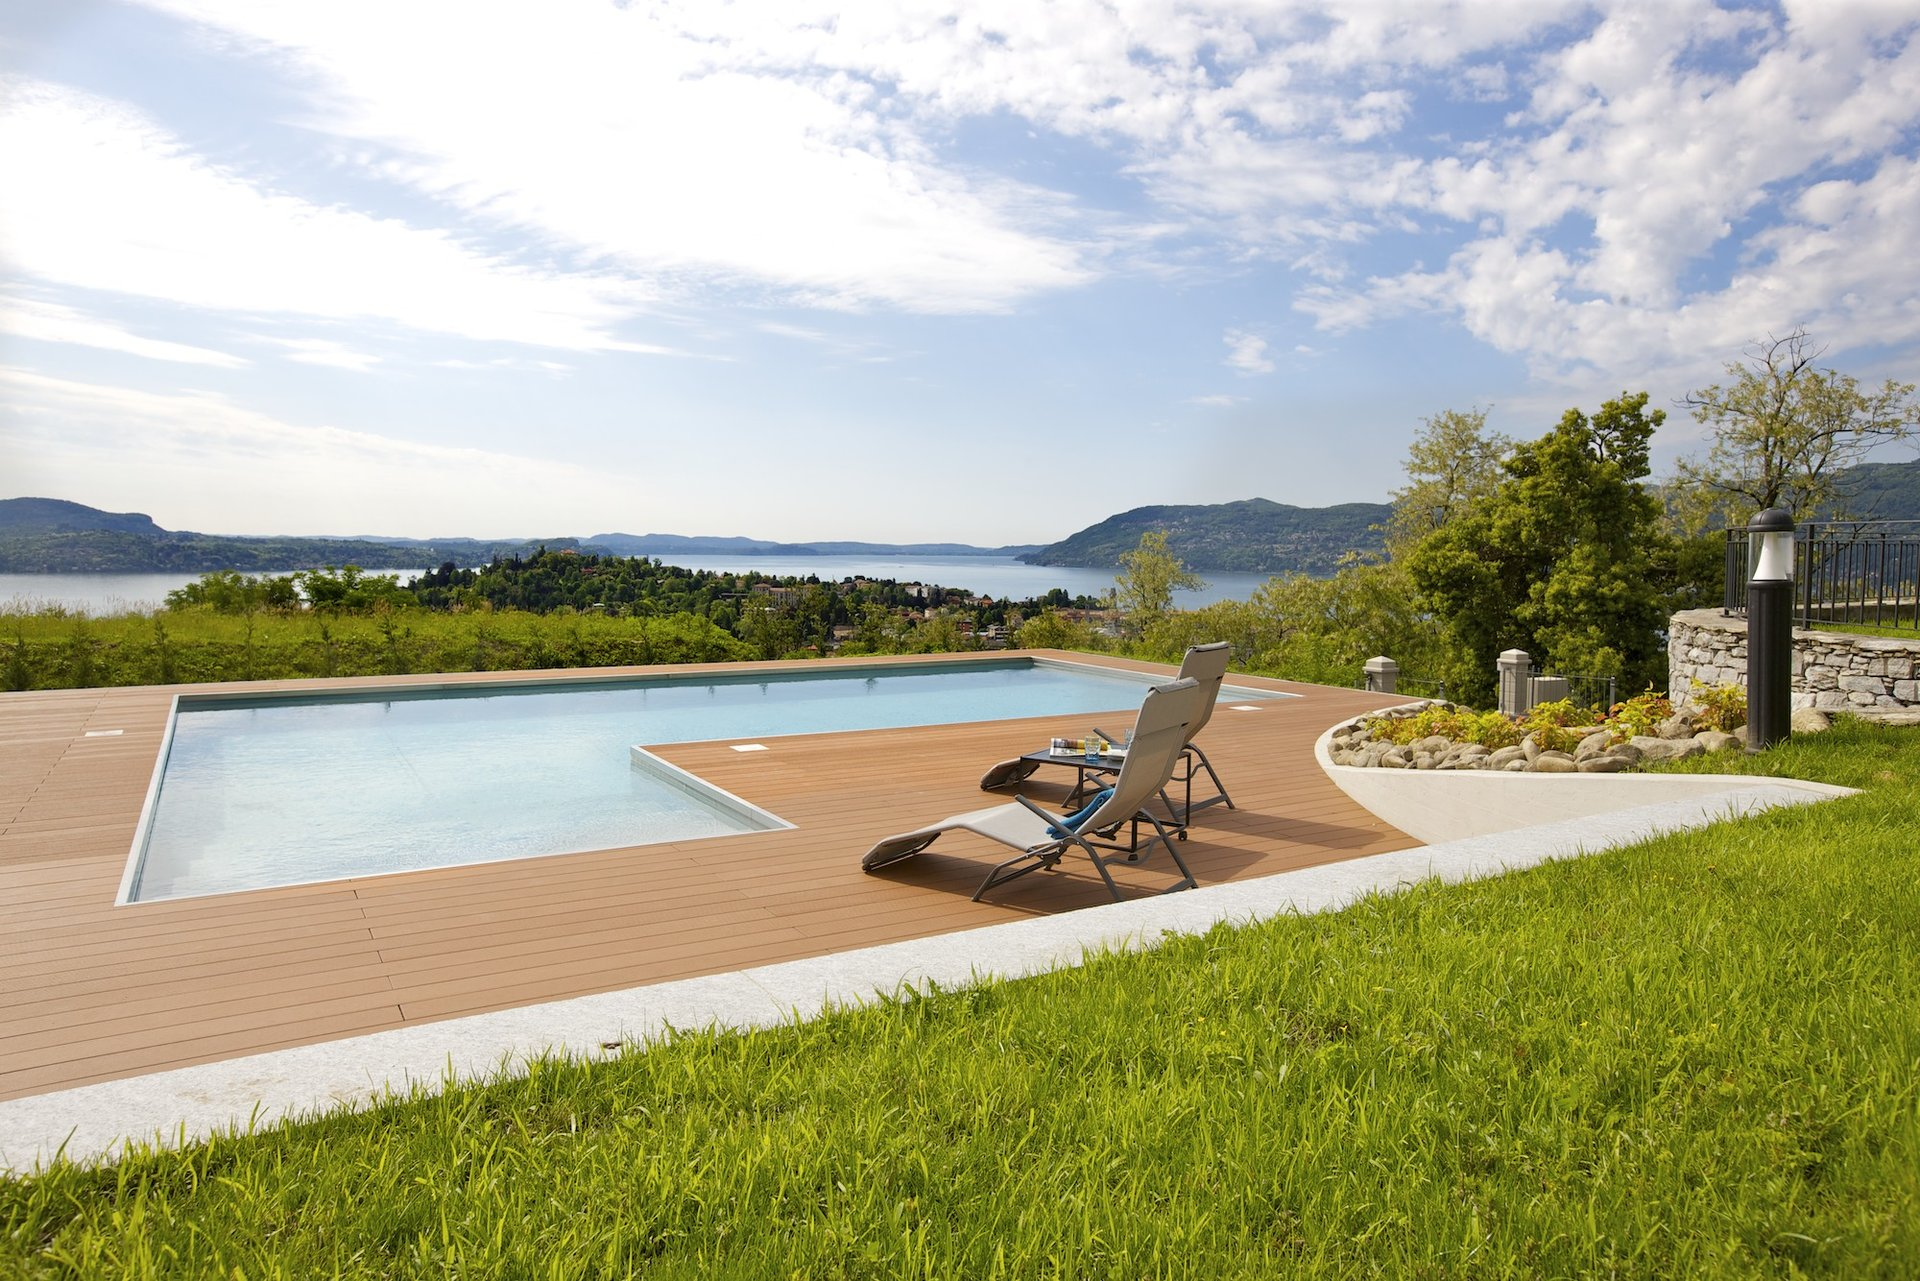 Luxury new villa for sale in Verbania - swimming pool with lake view